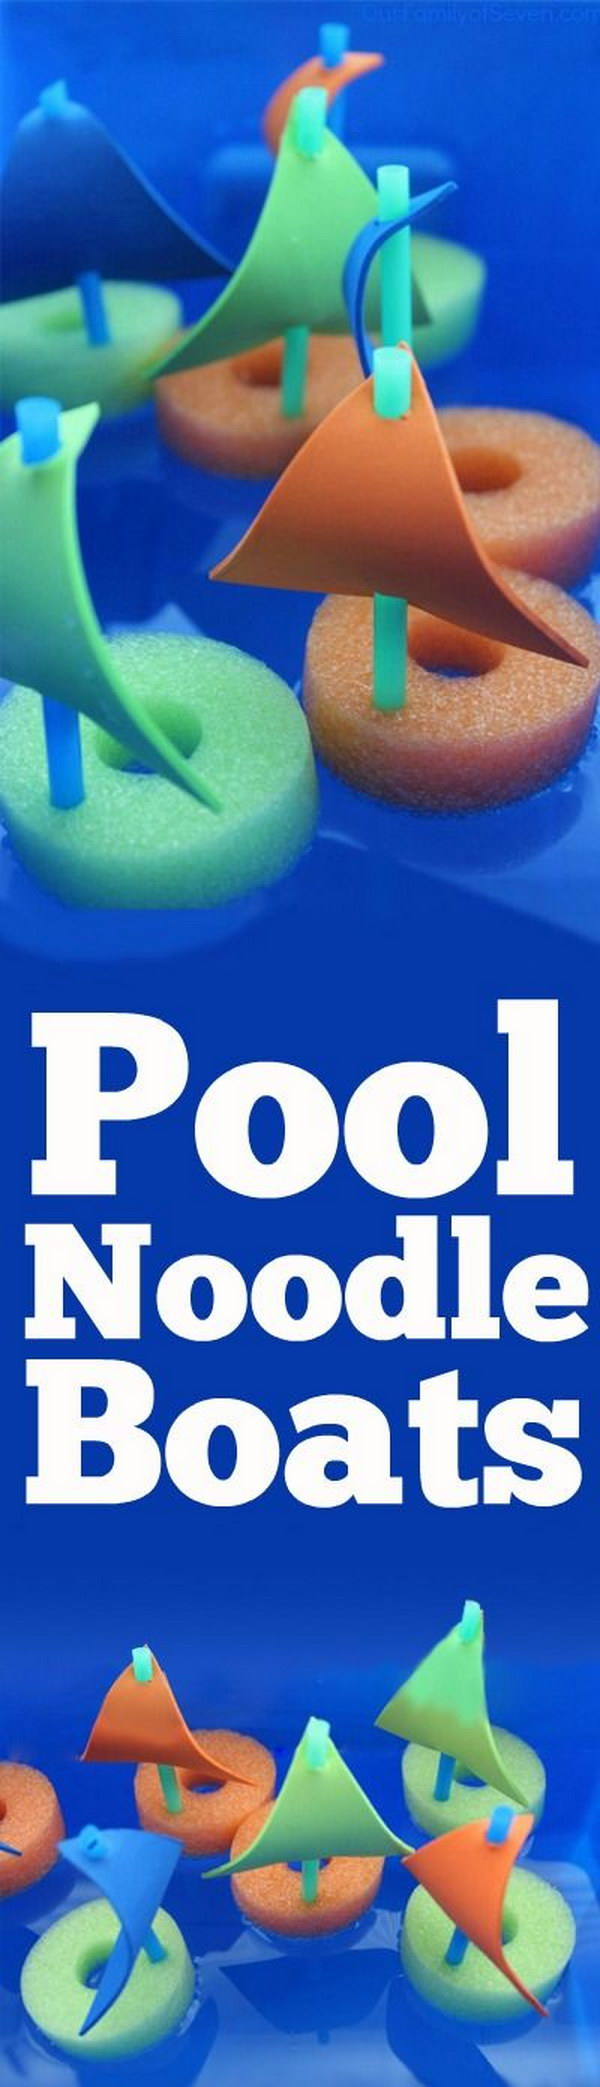 DIY Pool Noodle Boats.